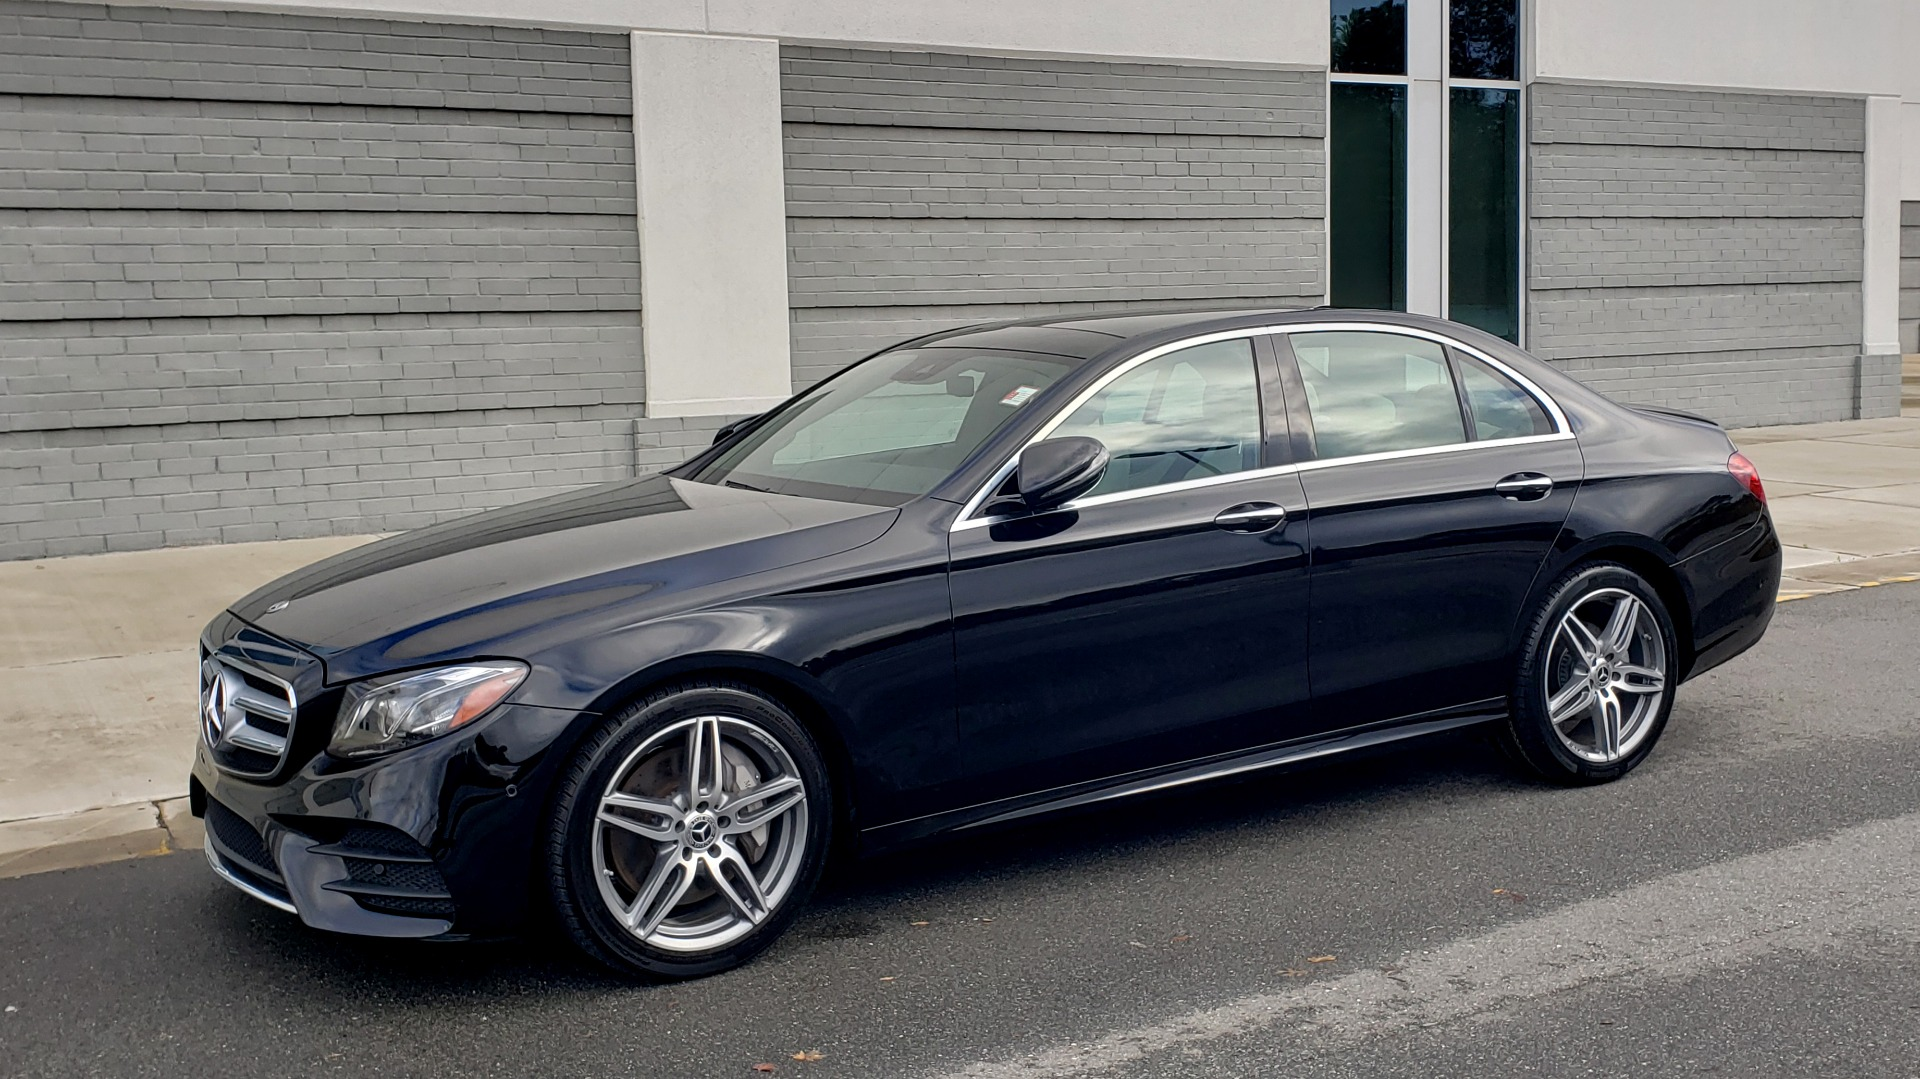 Used 2018 Mercedes-Benz E-CLASS E 300 PREM PKG 2 / NAV / PANO-ROOF / WARMTH & COMFORT PKG for sale $35,295 at Formula Imports in Charlotte NC 28227 6